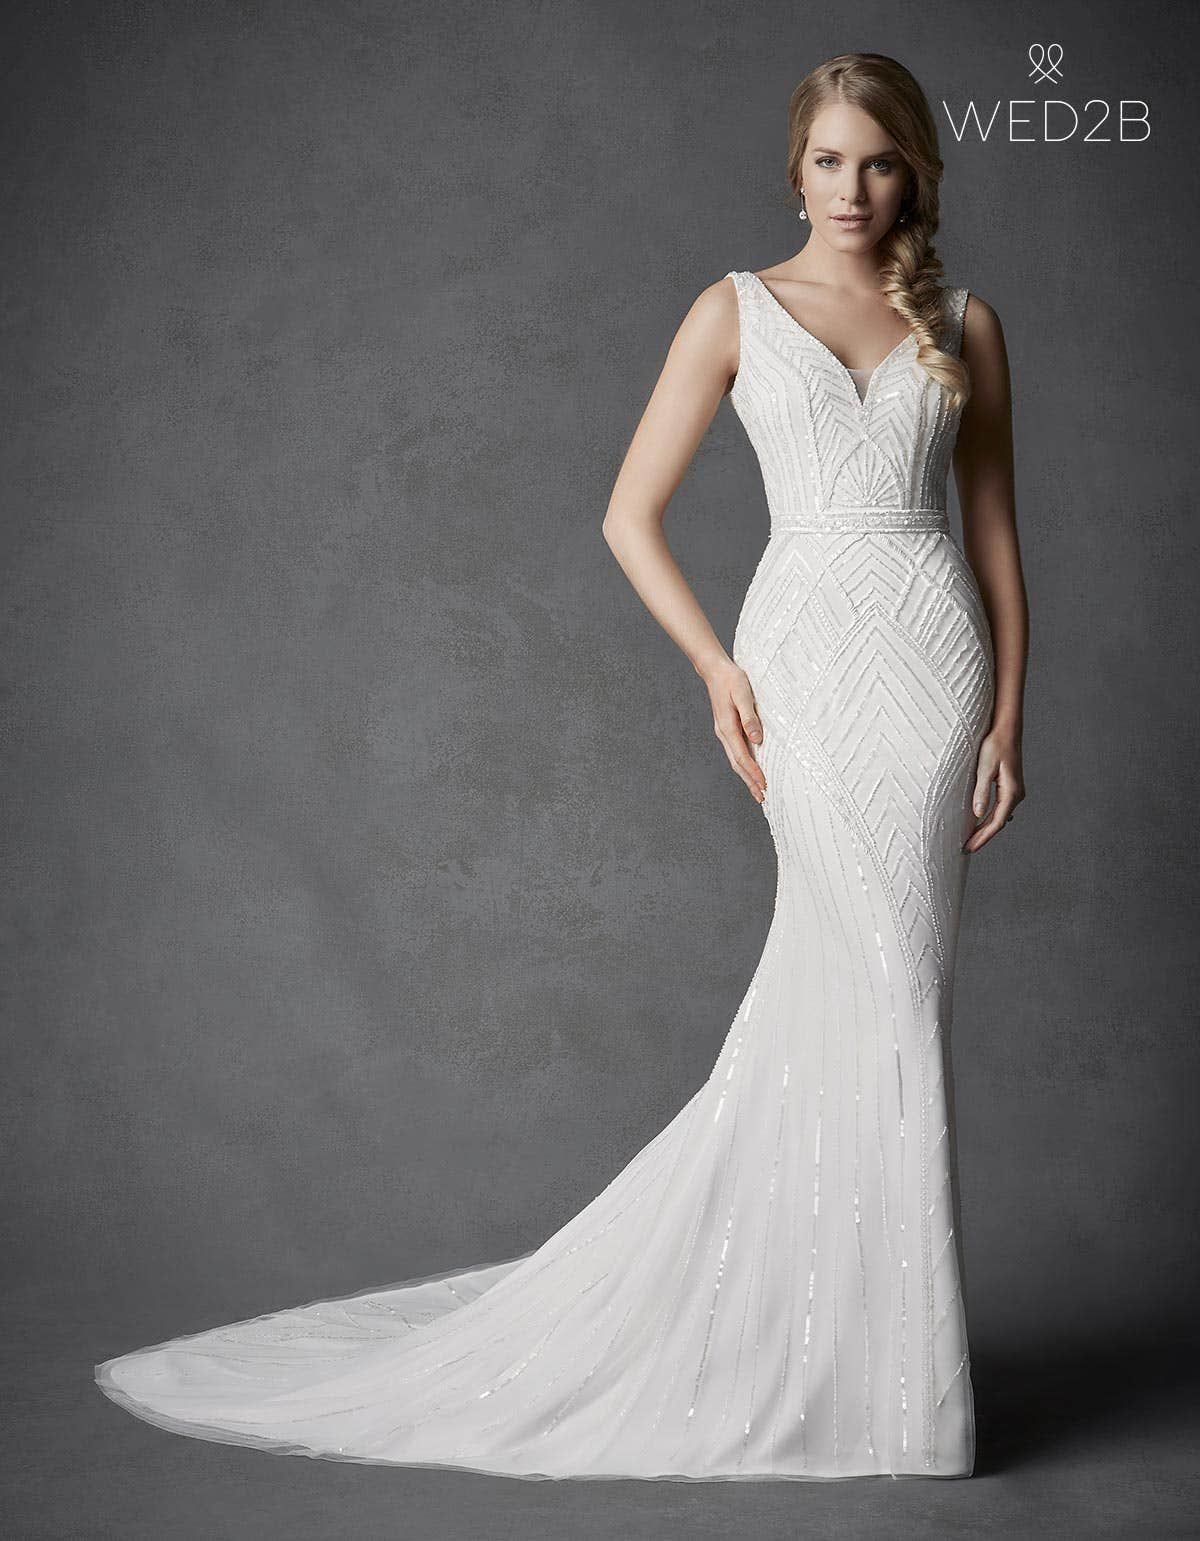 Destination Wedding Dresses - Cyrus